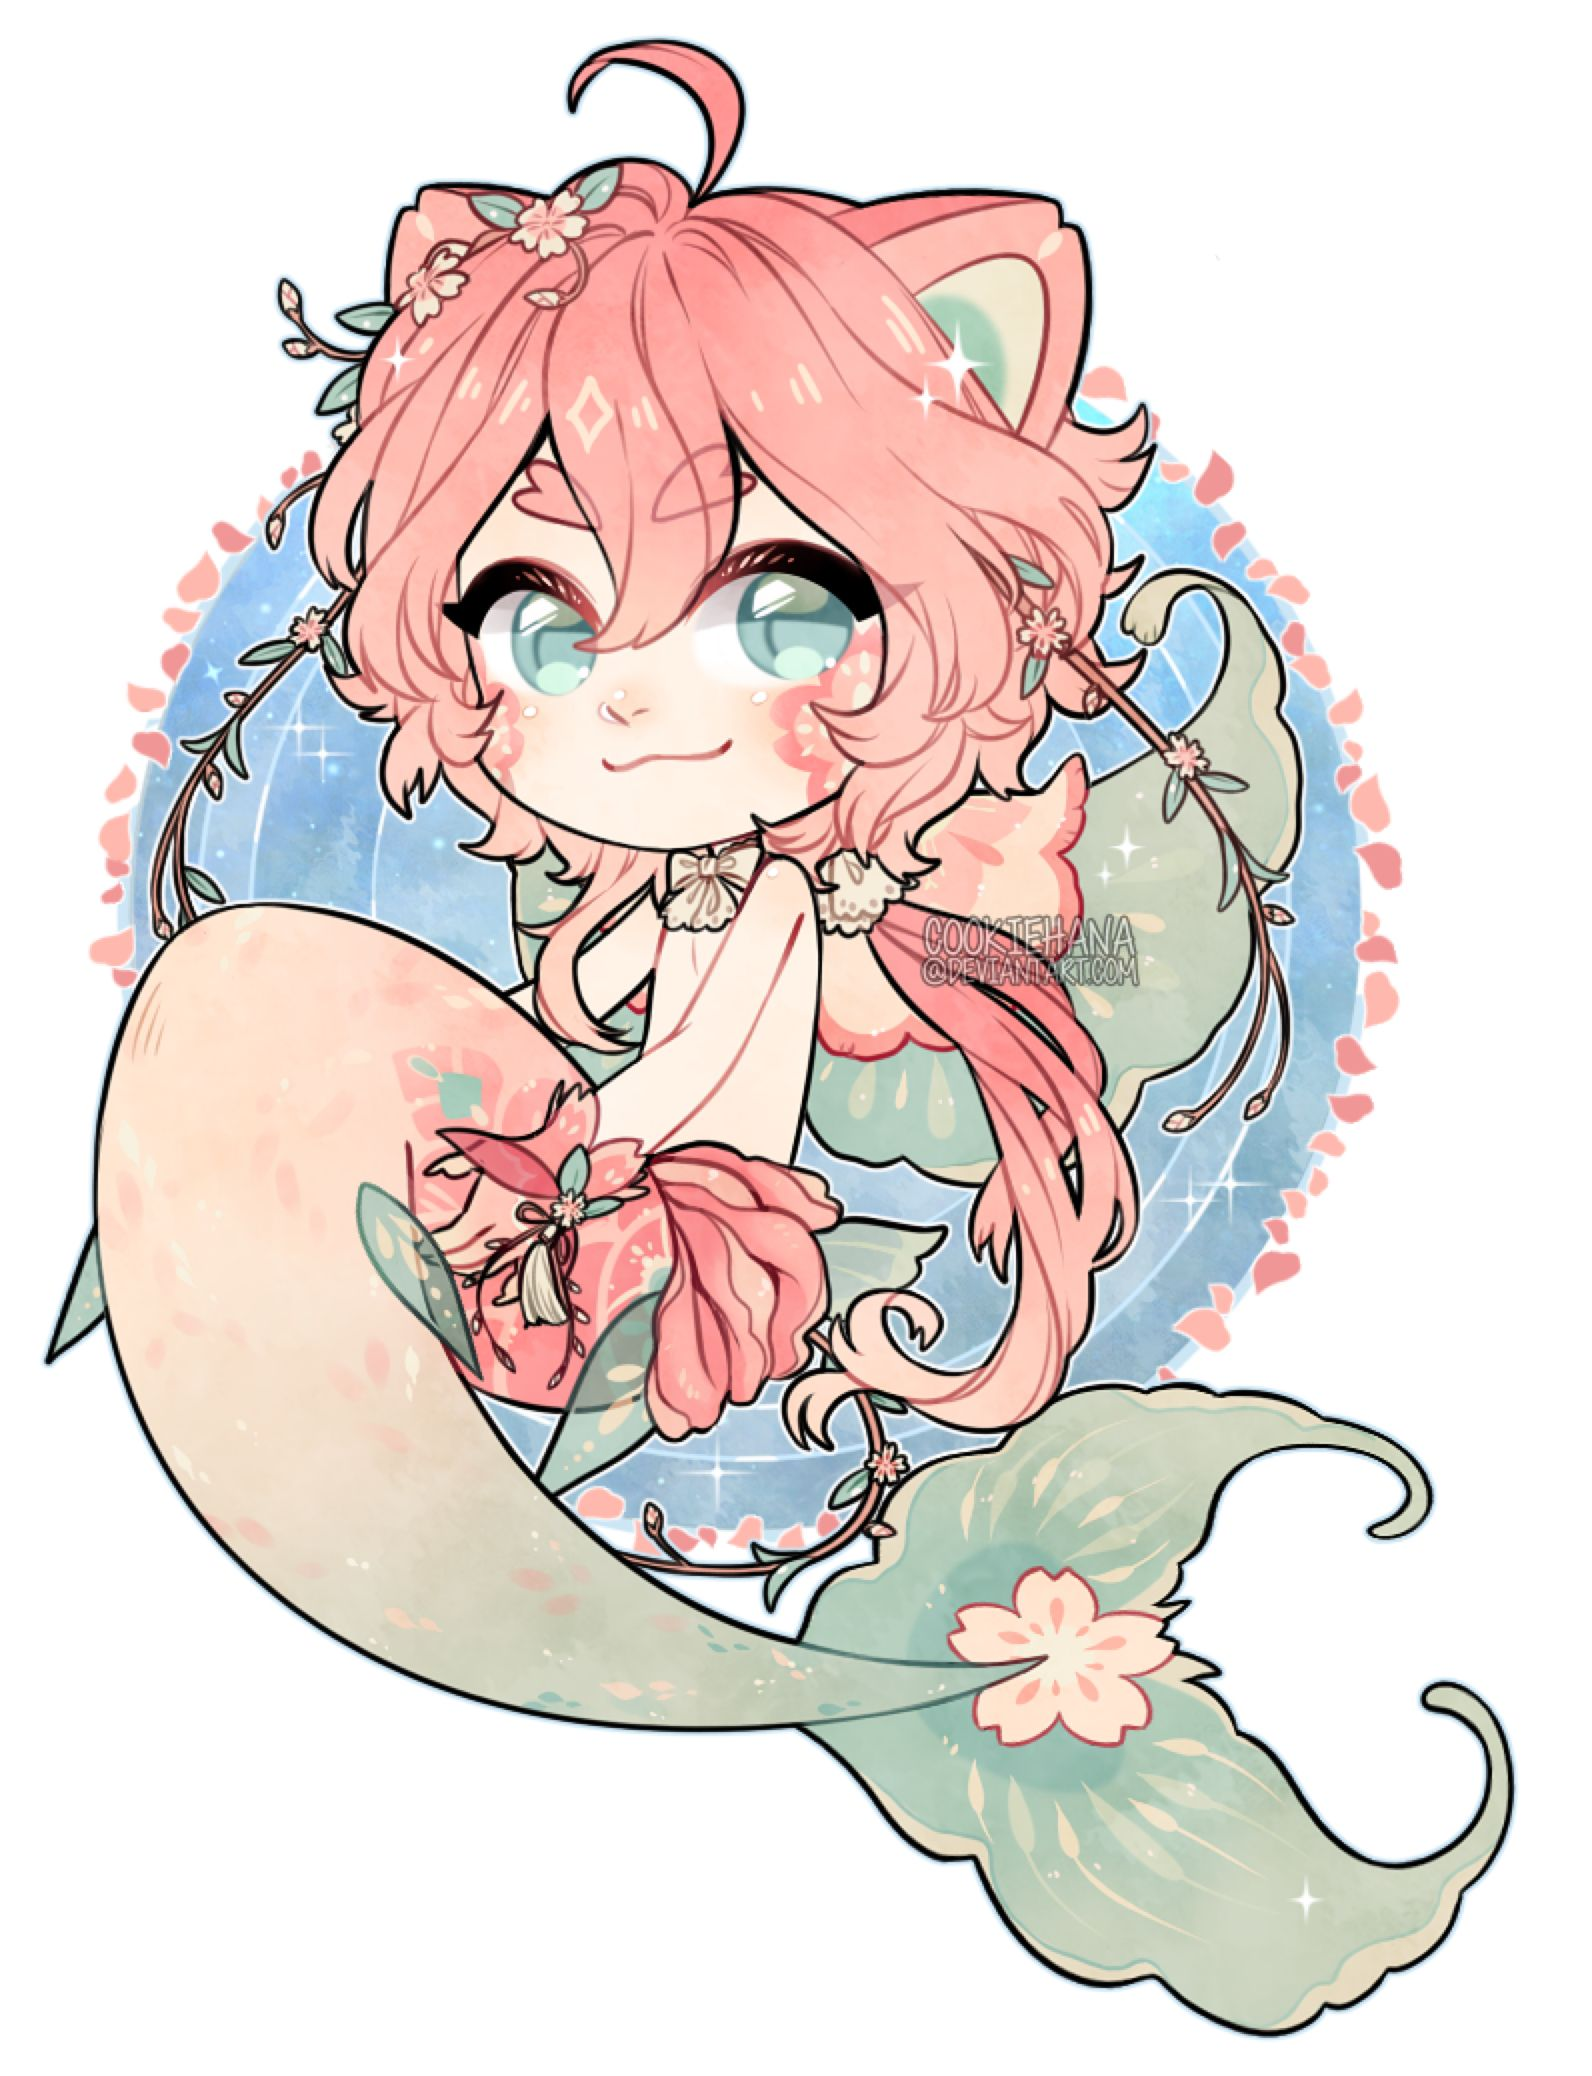 Cm Niaro By Cookiehana On Deviantart With Images Cute Anime